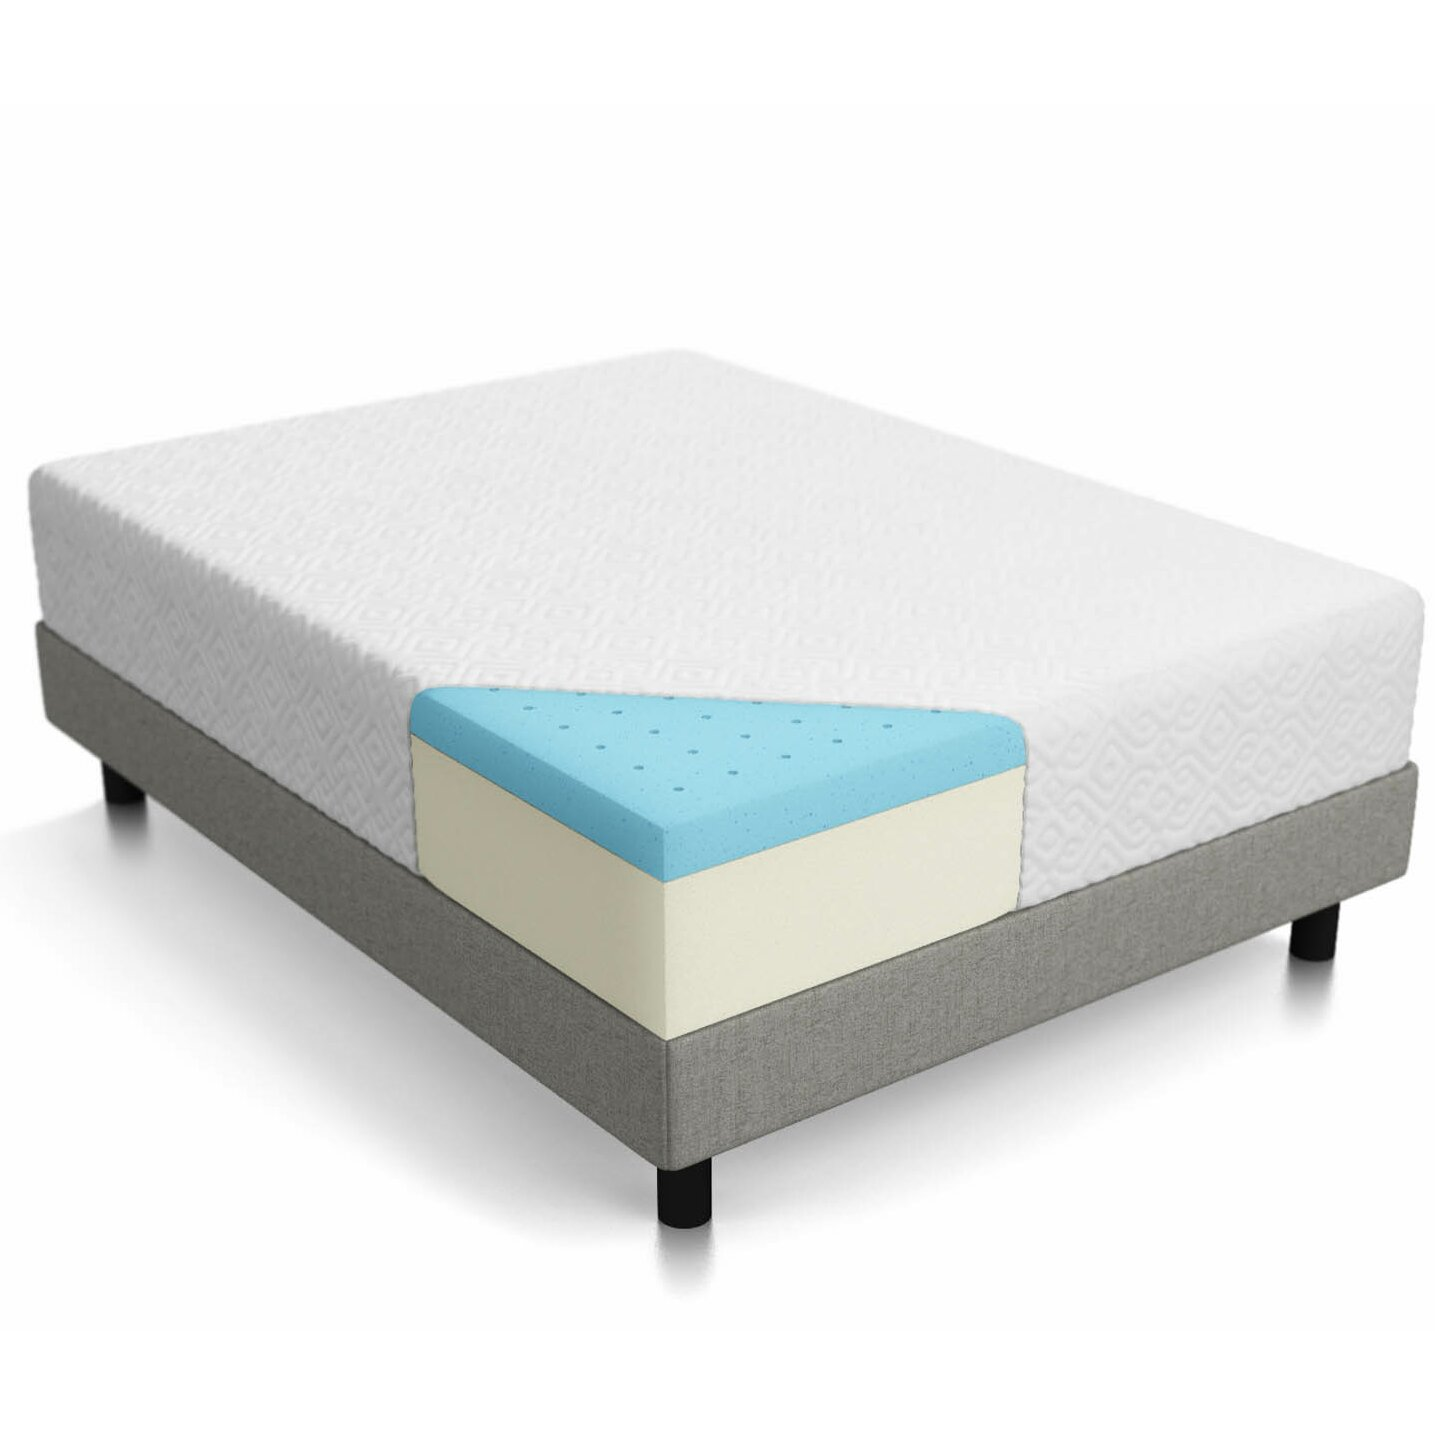 "Lucid 12"" Memory Foam Mattress & Reviews"